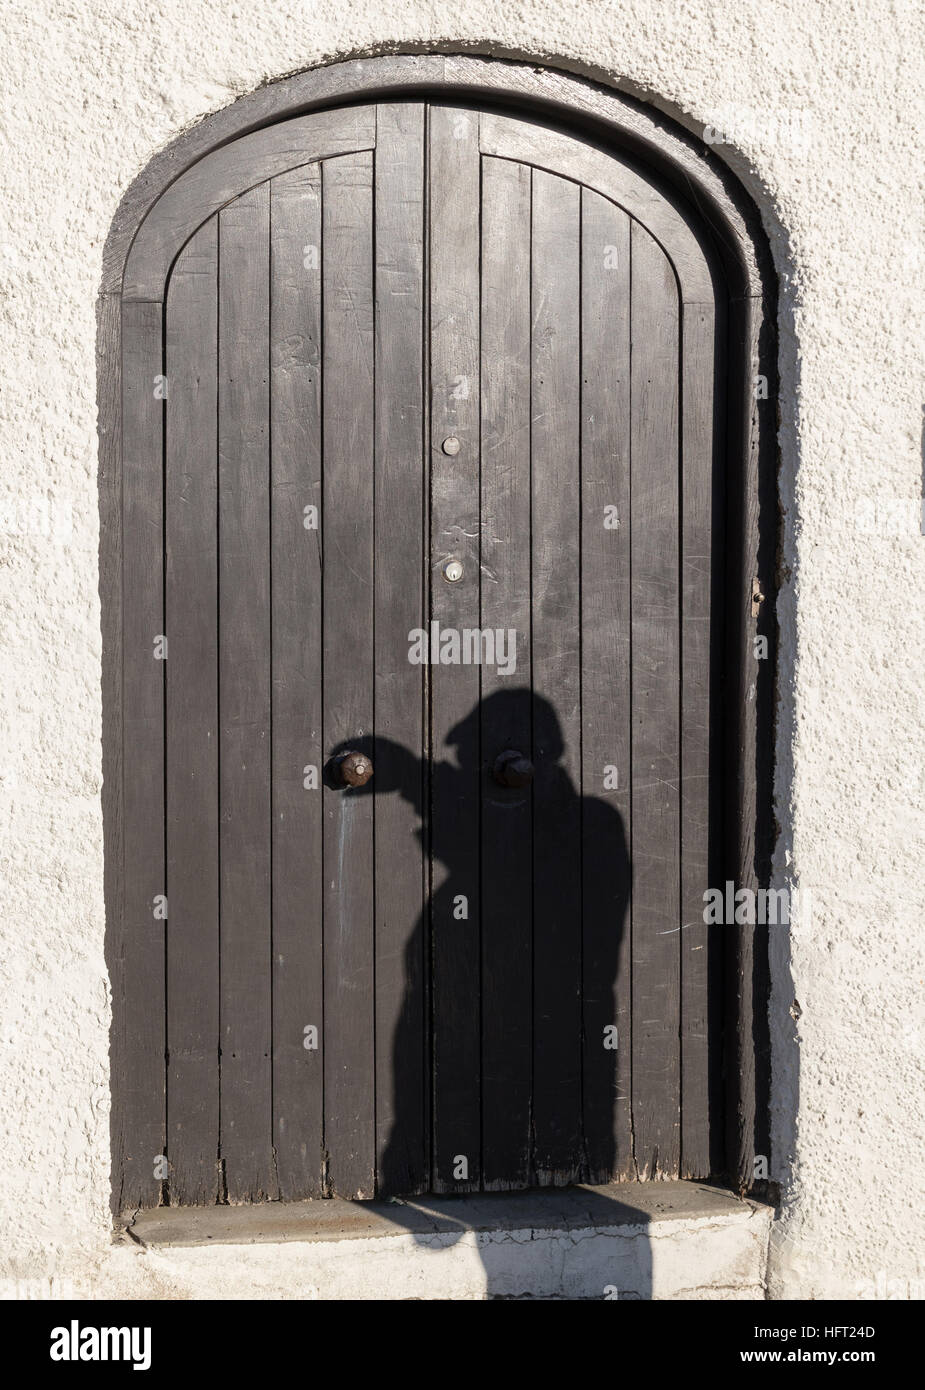 shadow illusion of man with hand up to turn handle and open door & shadow illusion of man with hand up to turn handle and open door ...